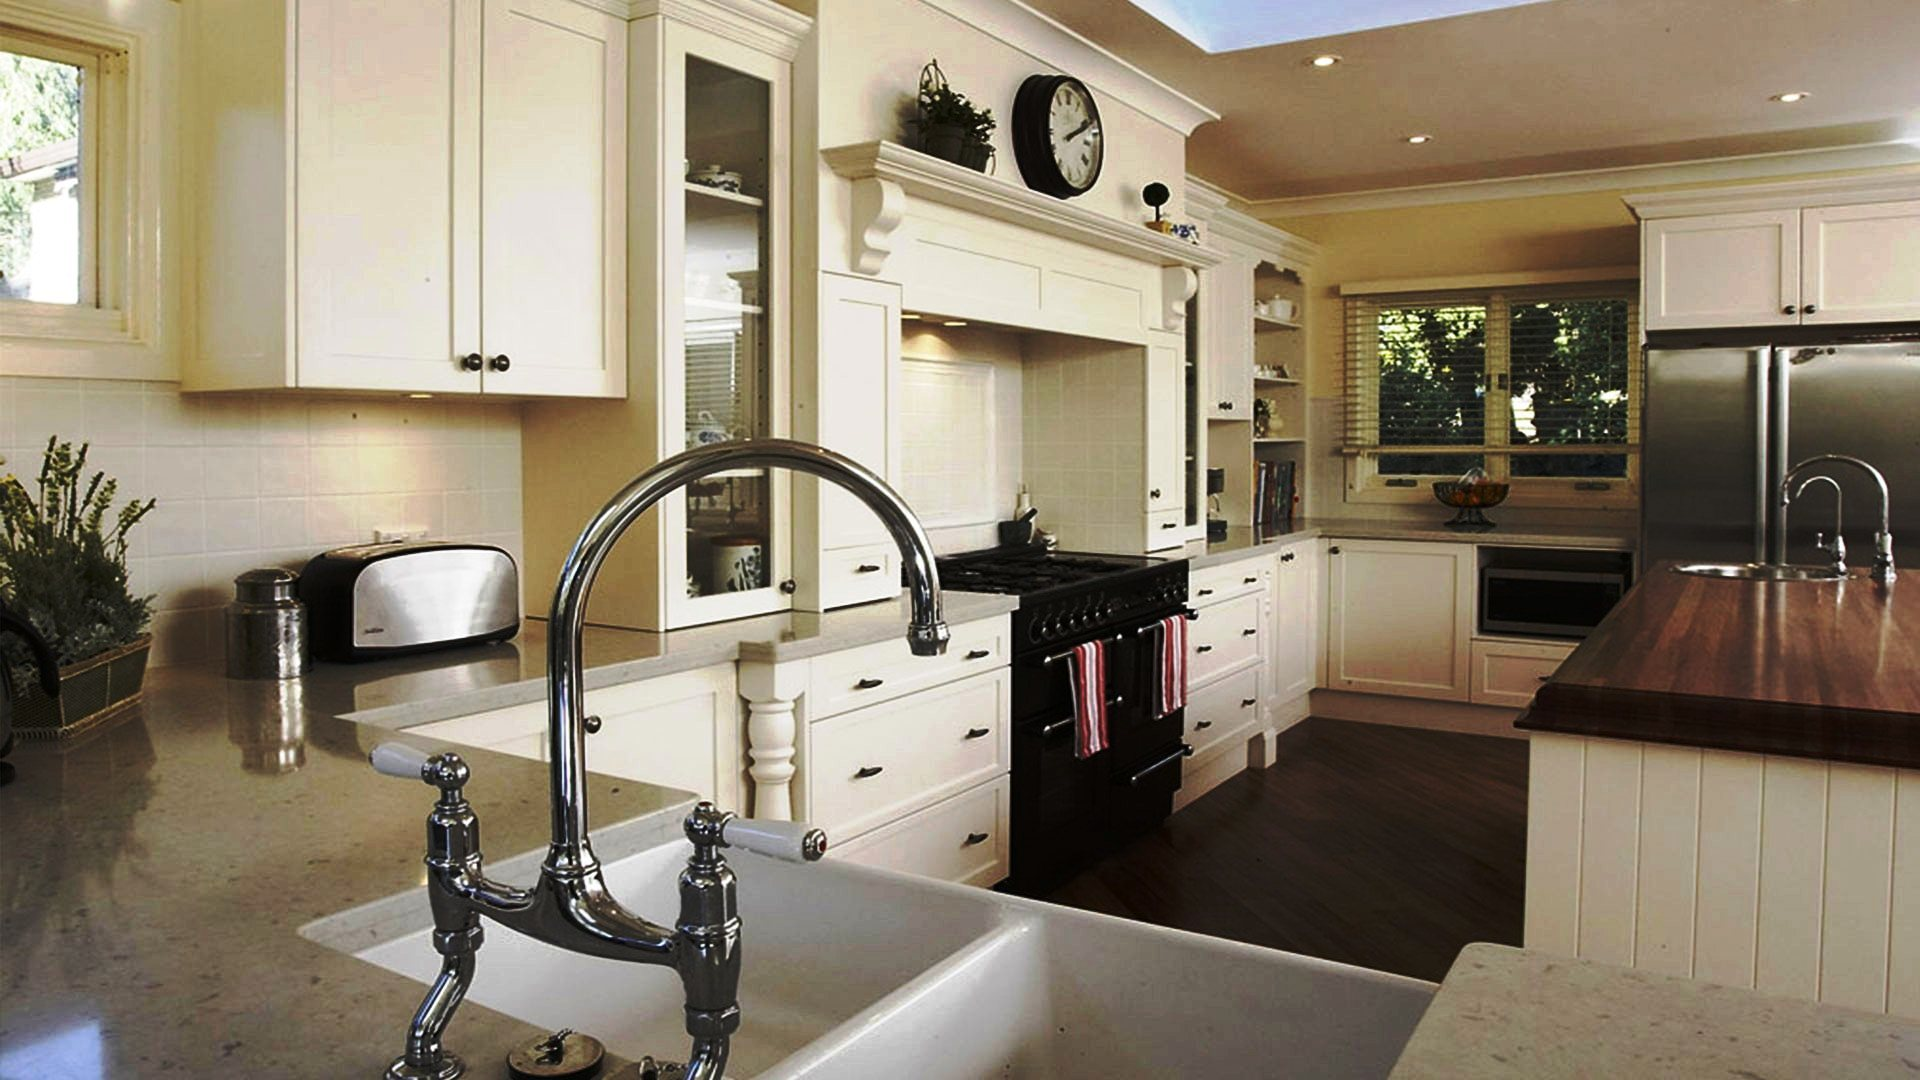 Wallpaper Magazine Kitchen Design 40 Most Beautiful Kitchen Wallpapers For Free Download